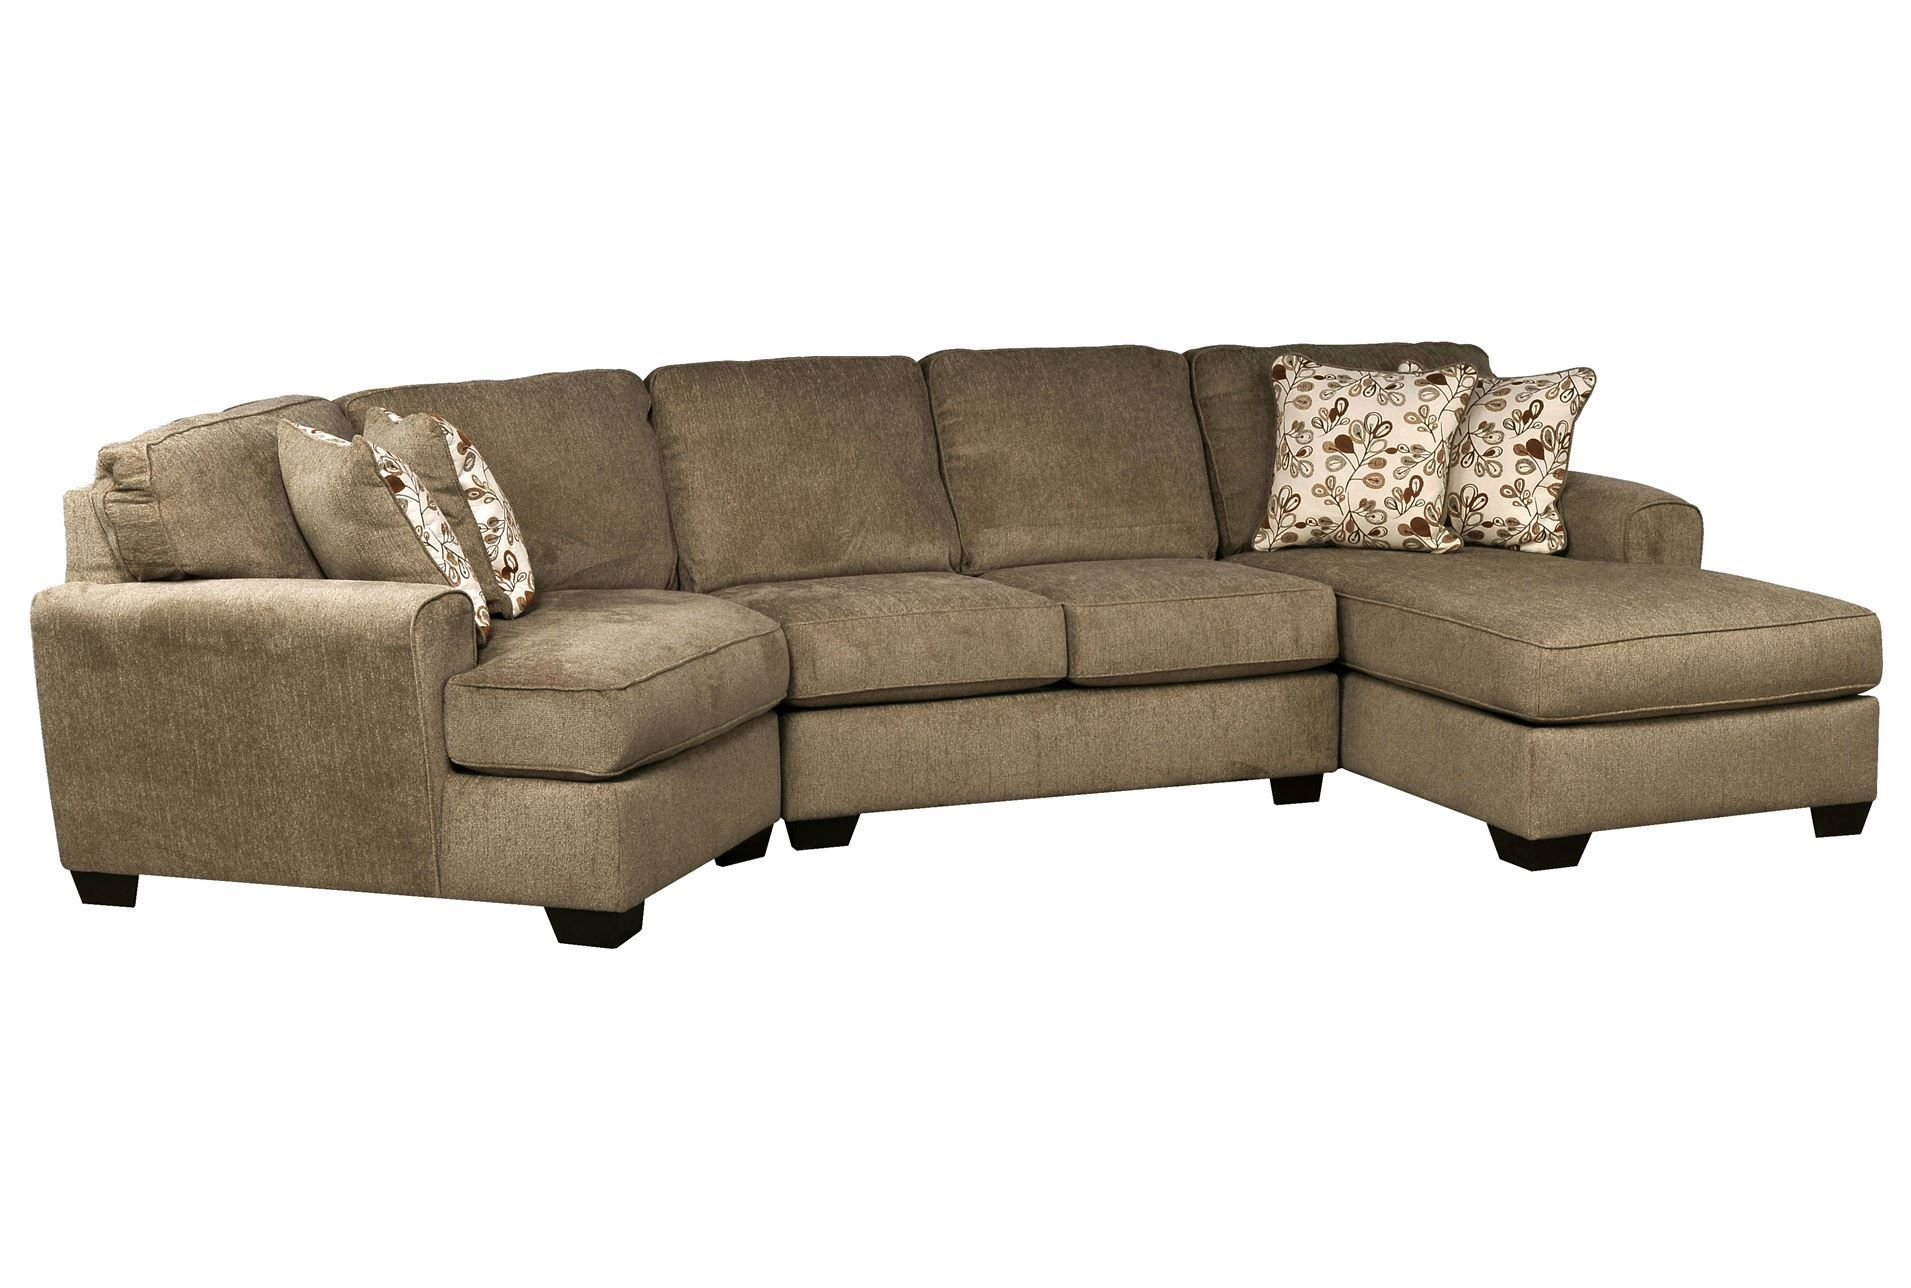 sofa with cuddler and chaise floor lamp sofaworks patola park 3 piece sectional w raf cornr